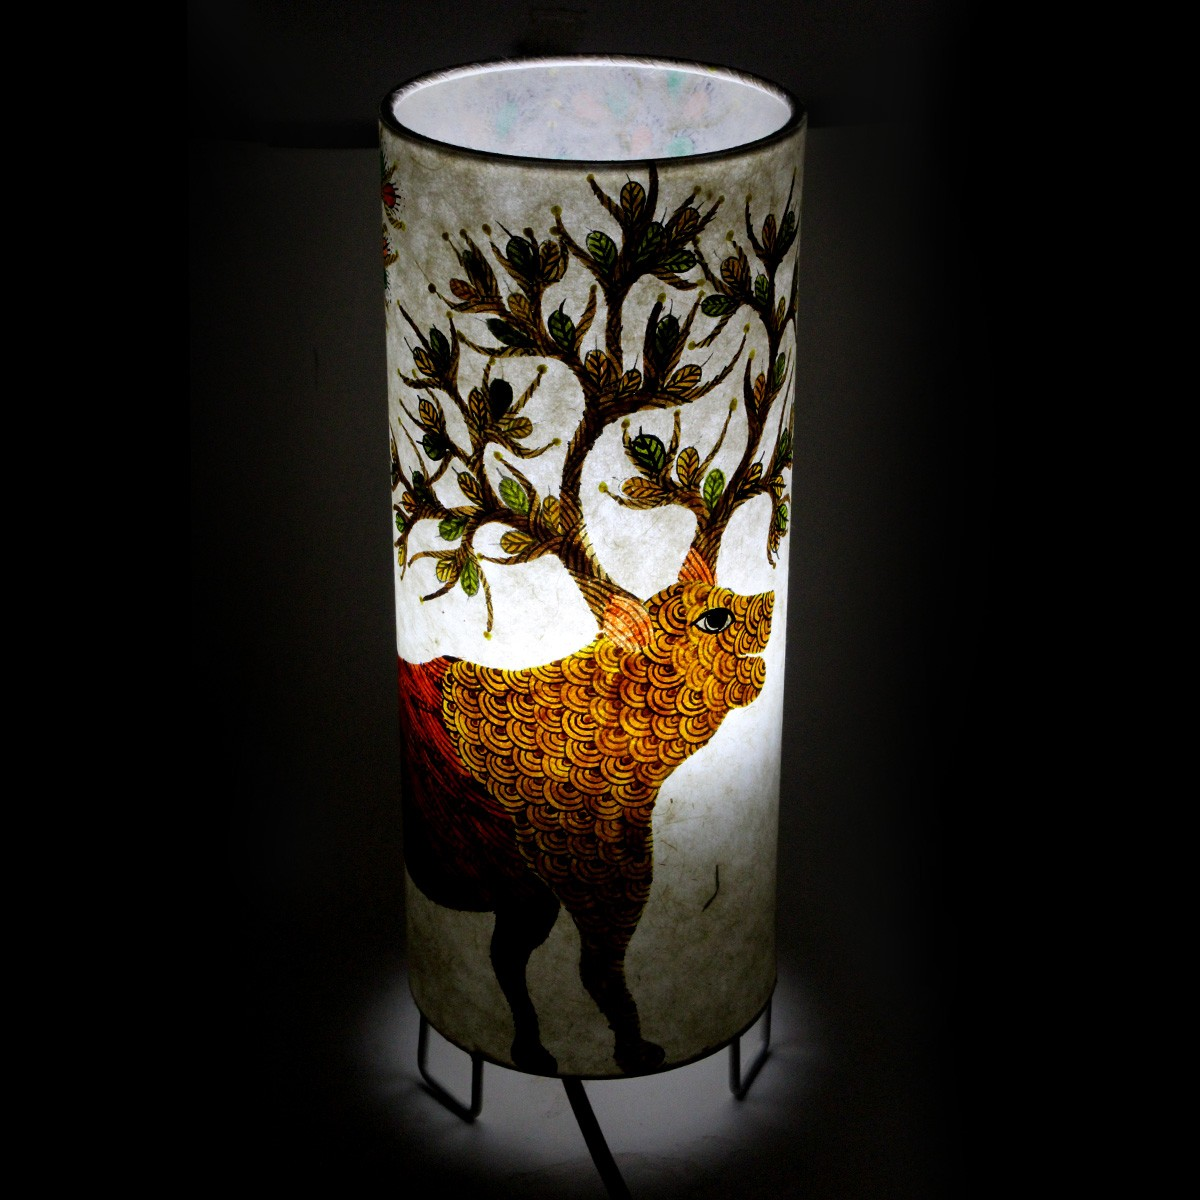 New Indian Classy Gond Art Handpainted Electric Decorative Night Lamp - Crafted On Handmade Canvas Paper and Steal Base By Awarded Tribal Artisans Of India